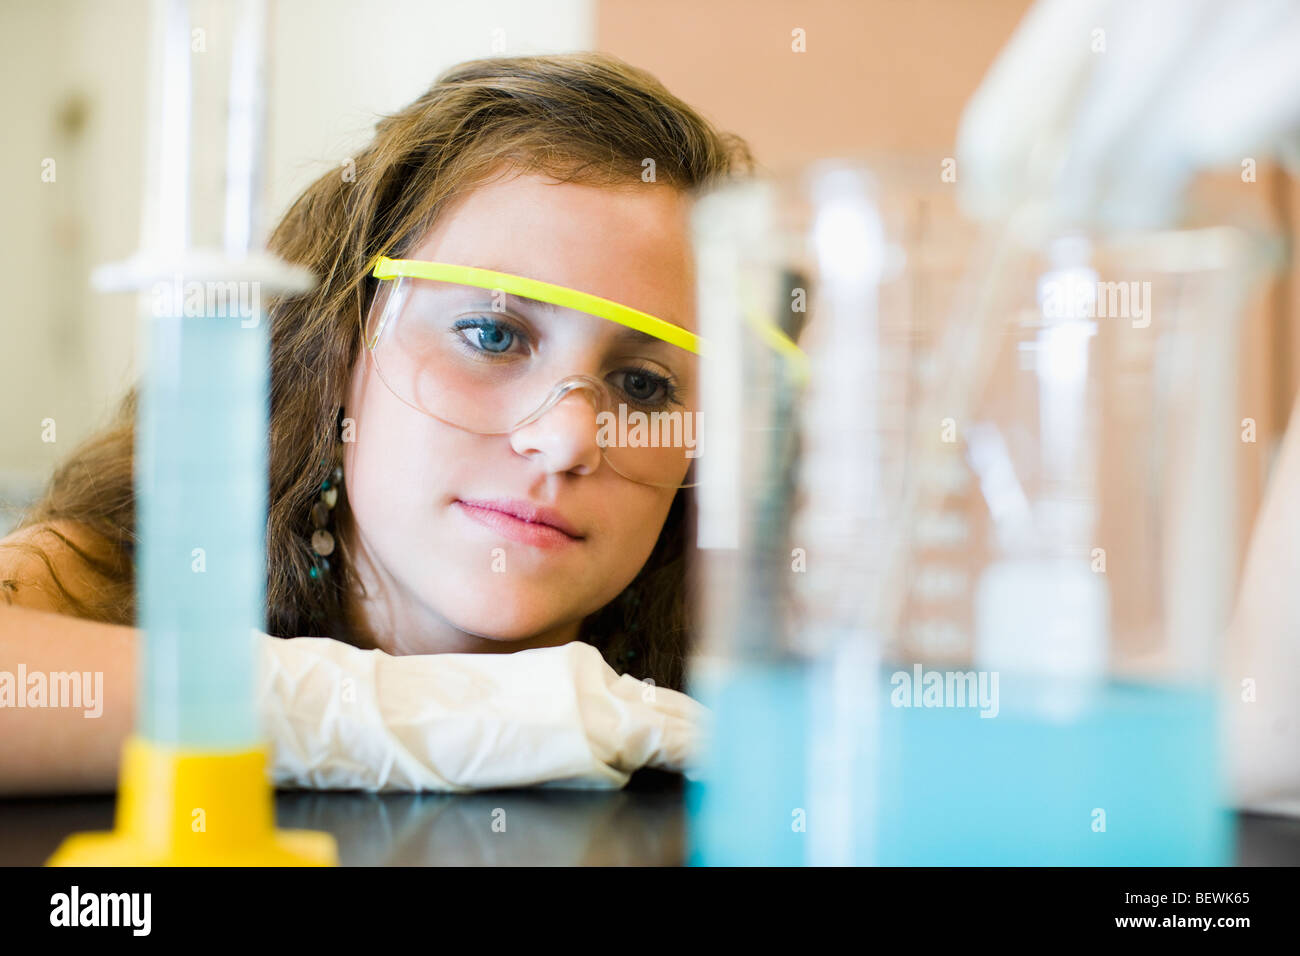 Student doing a scientific experiment in a laboratory - Stock Image